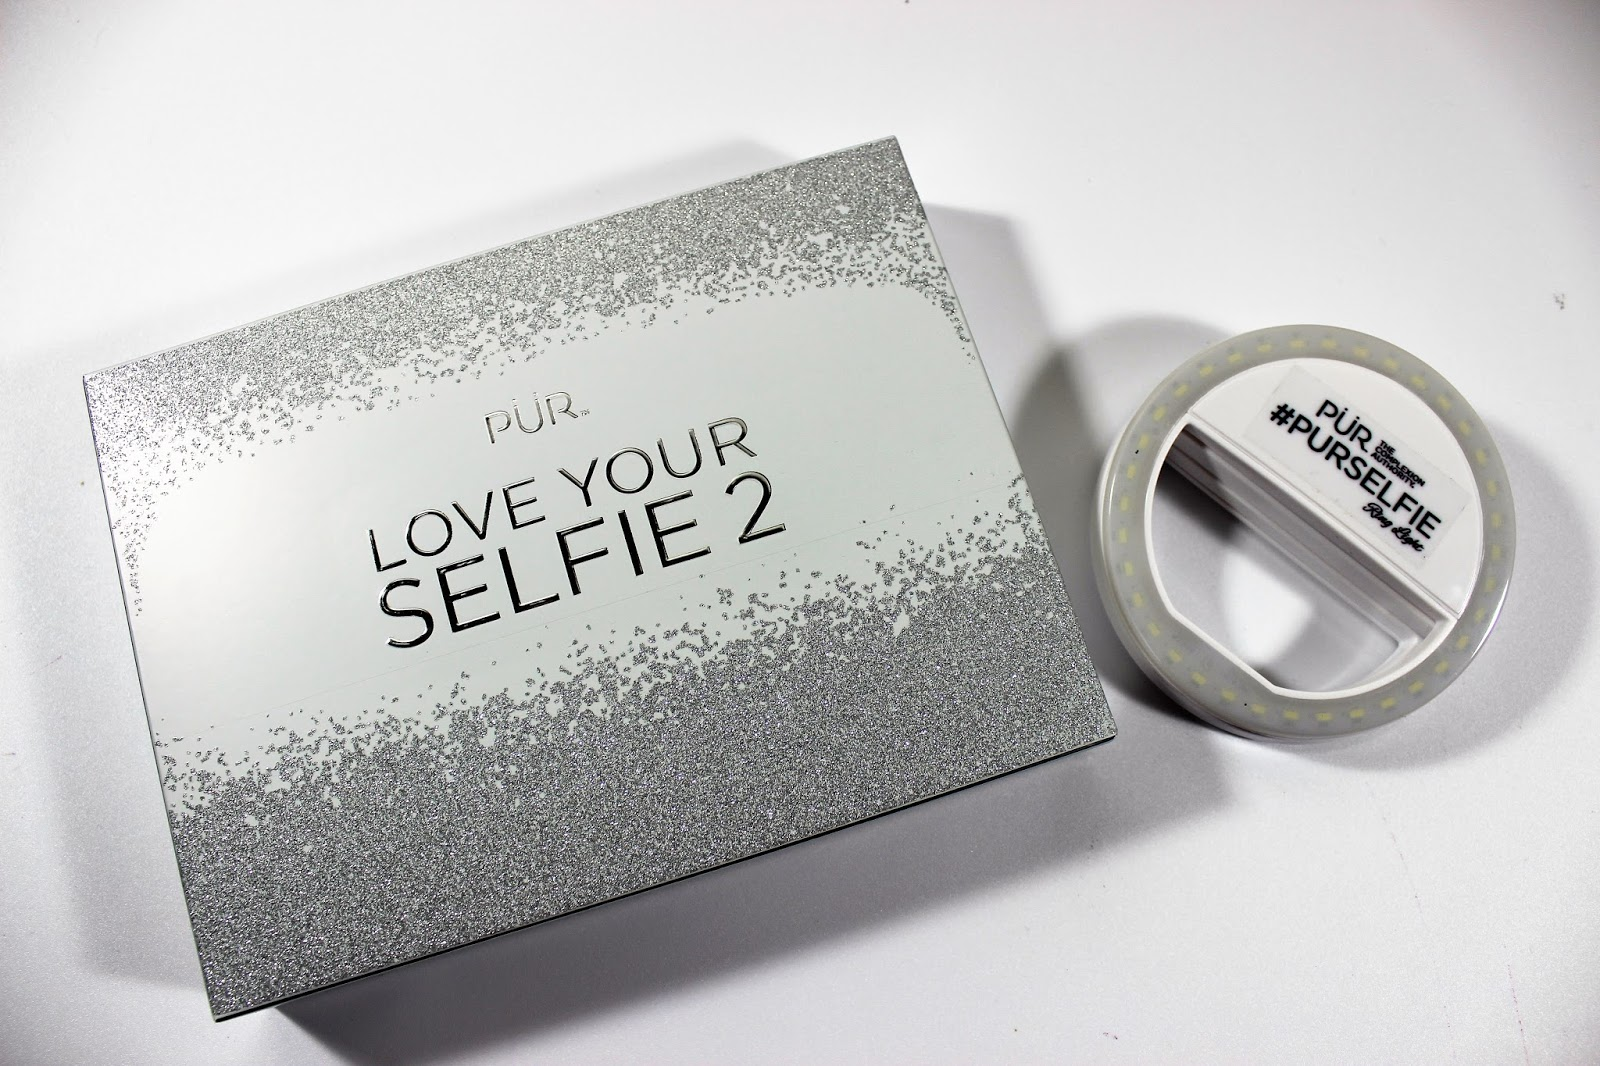 Pur Cosmetics Love Your Selfie 2